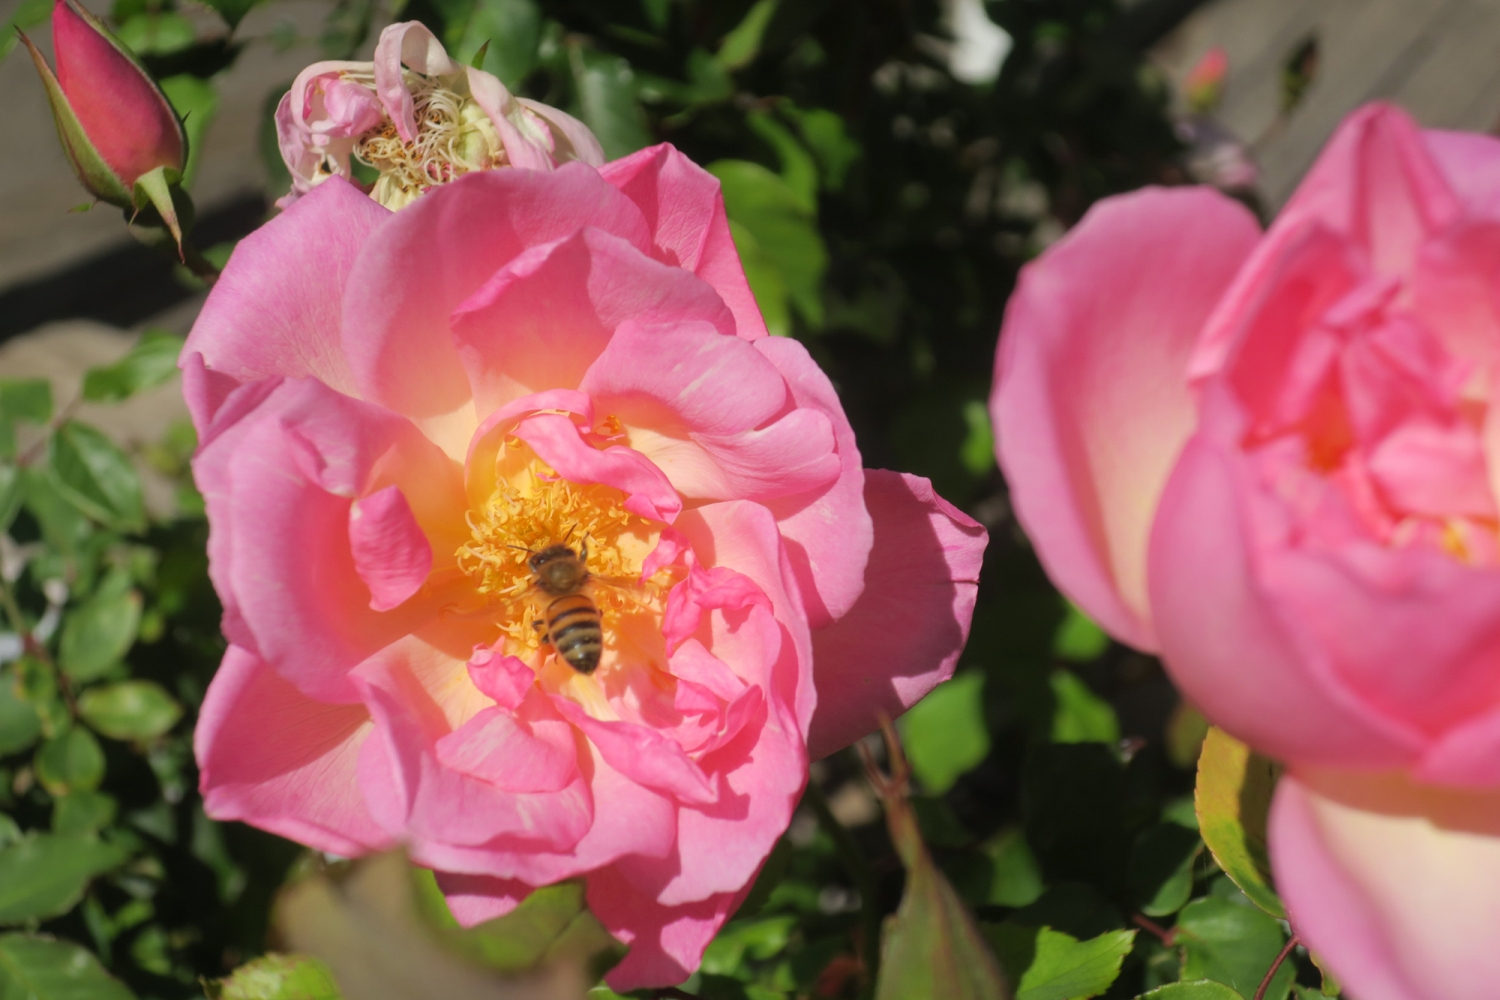 Pink rose with yellow centre with bee.